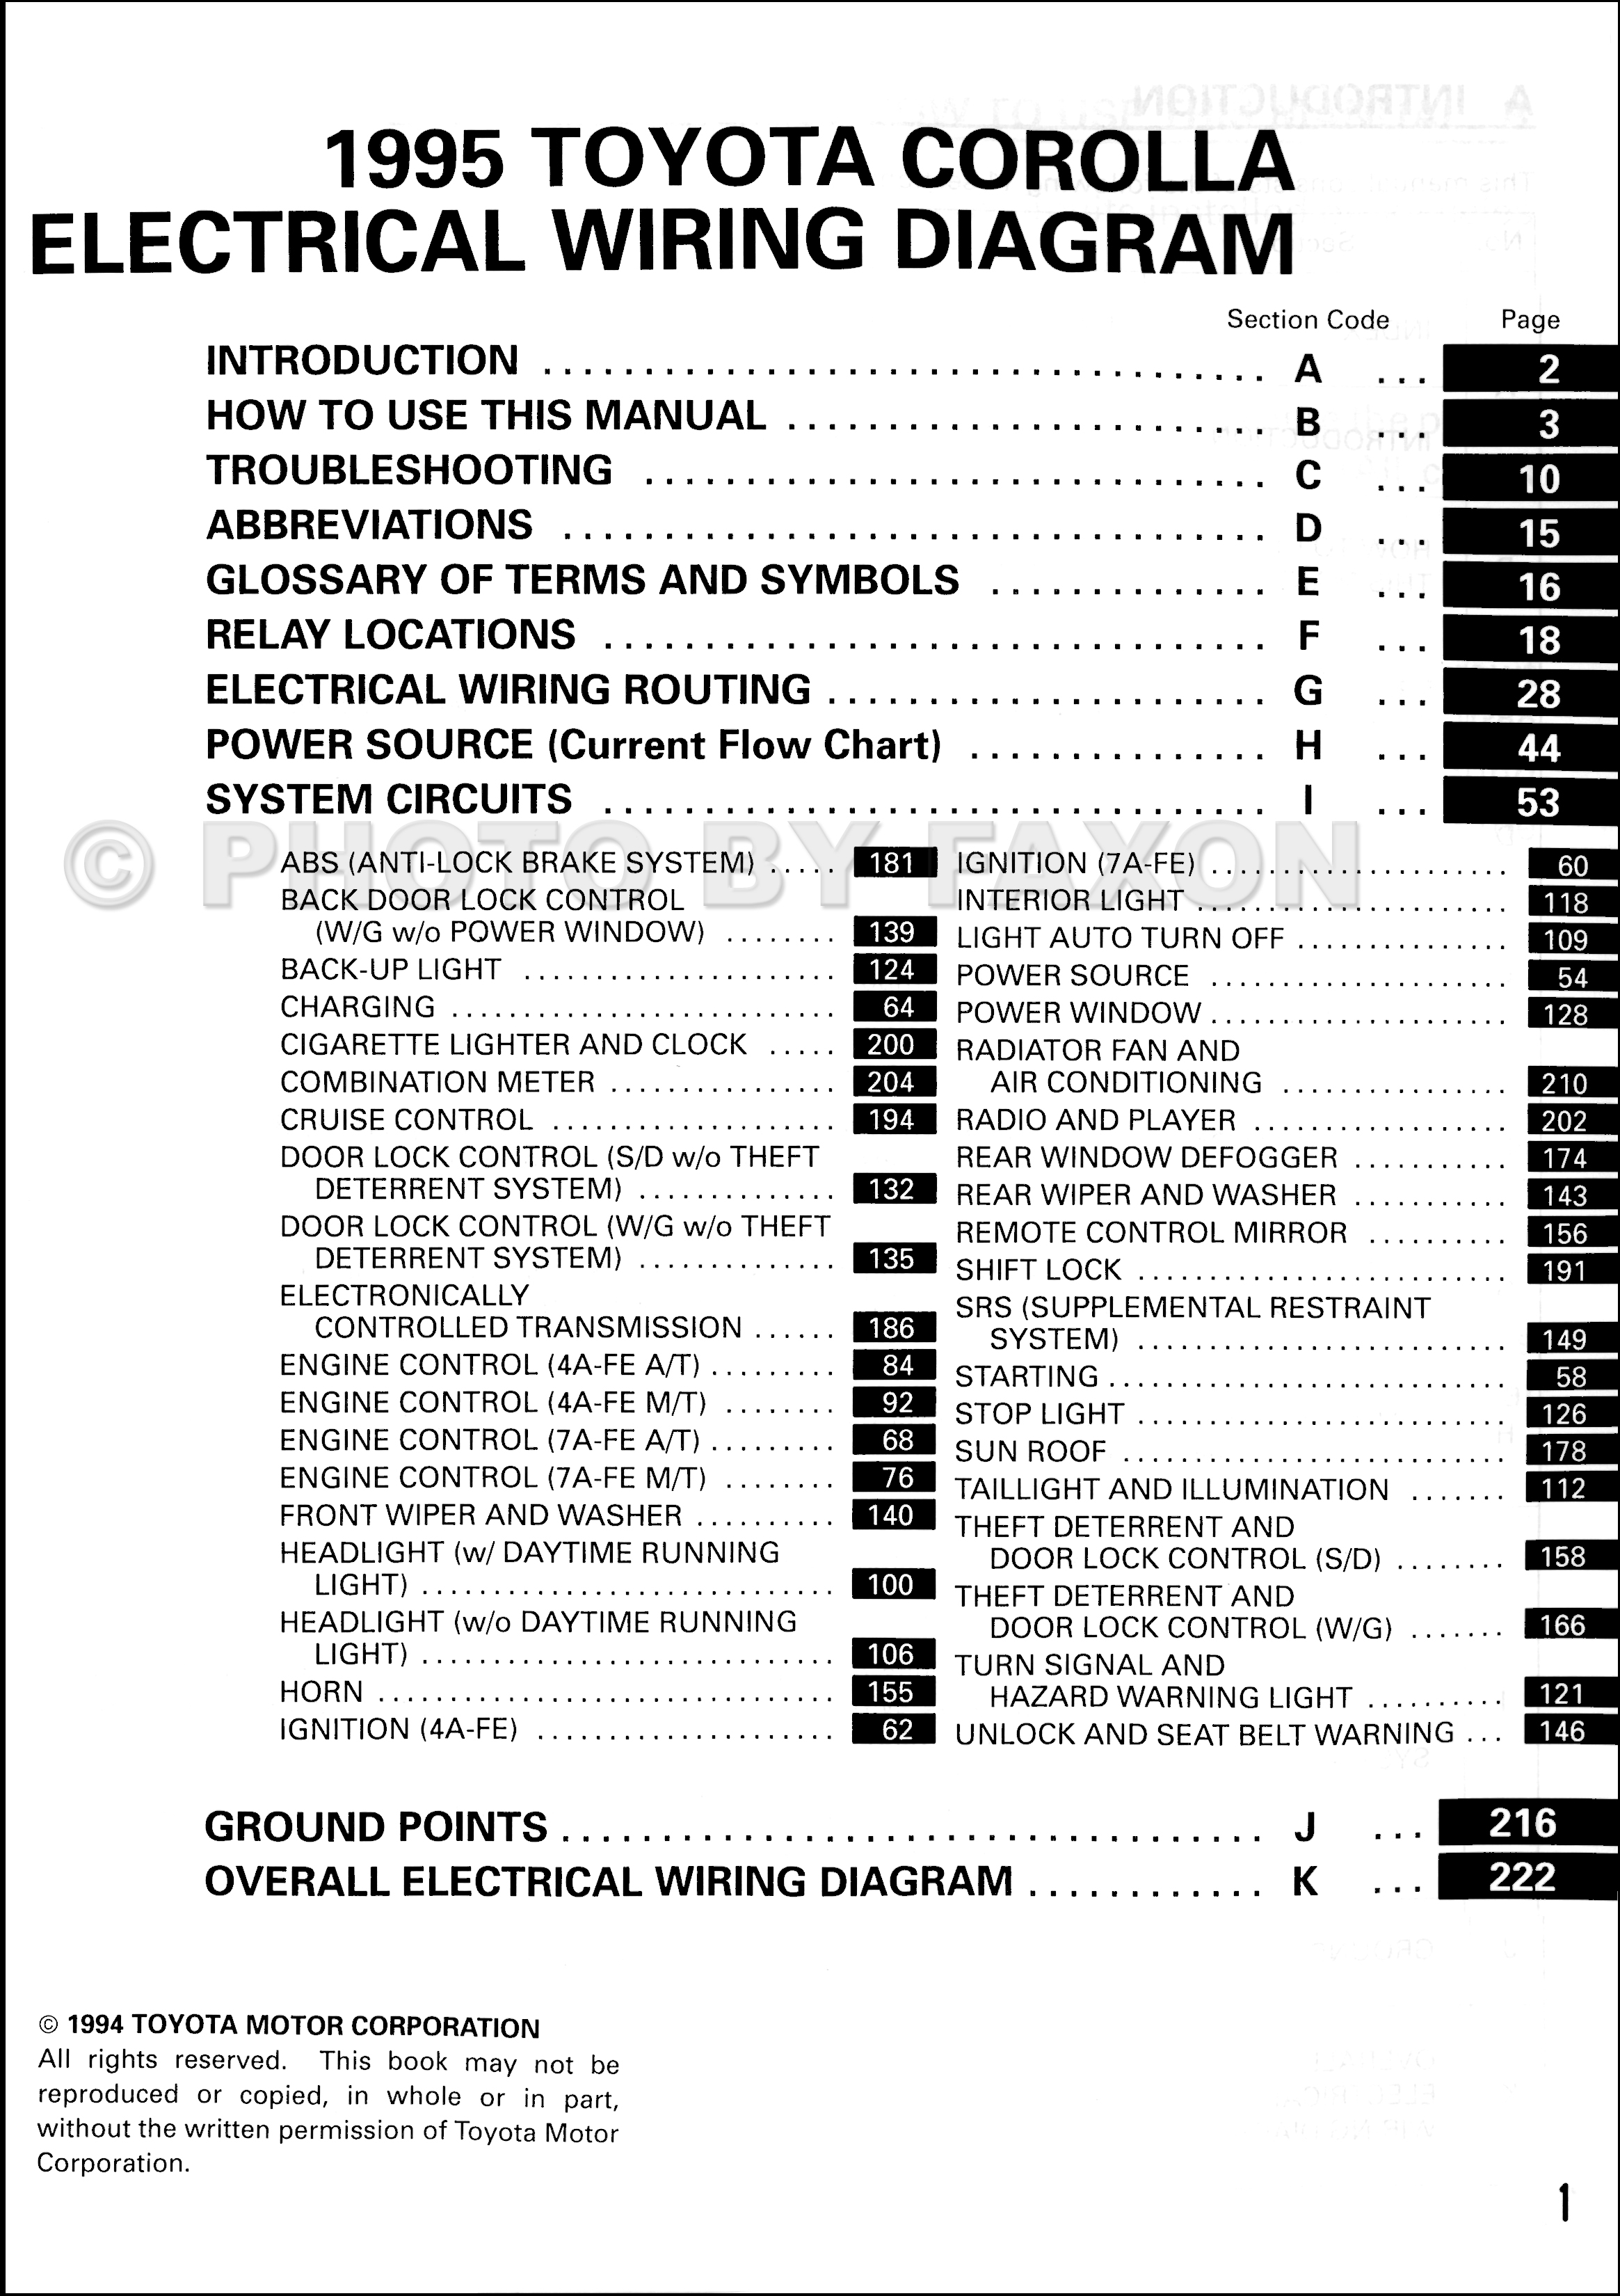 1995ToyotaCorollaOWD TOC 1995 toyota corolla wiring diagram manual original toyota camry 1989 electrical wiring diagram at reclaimingppi.co